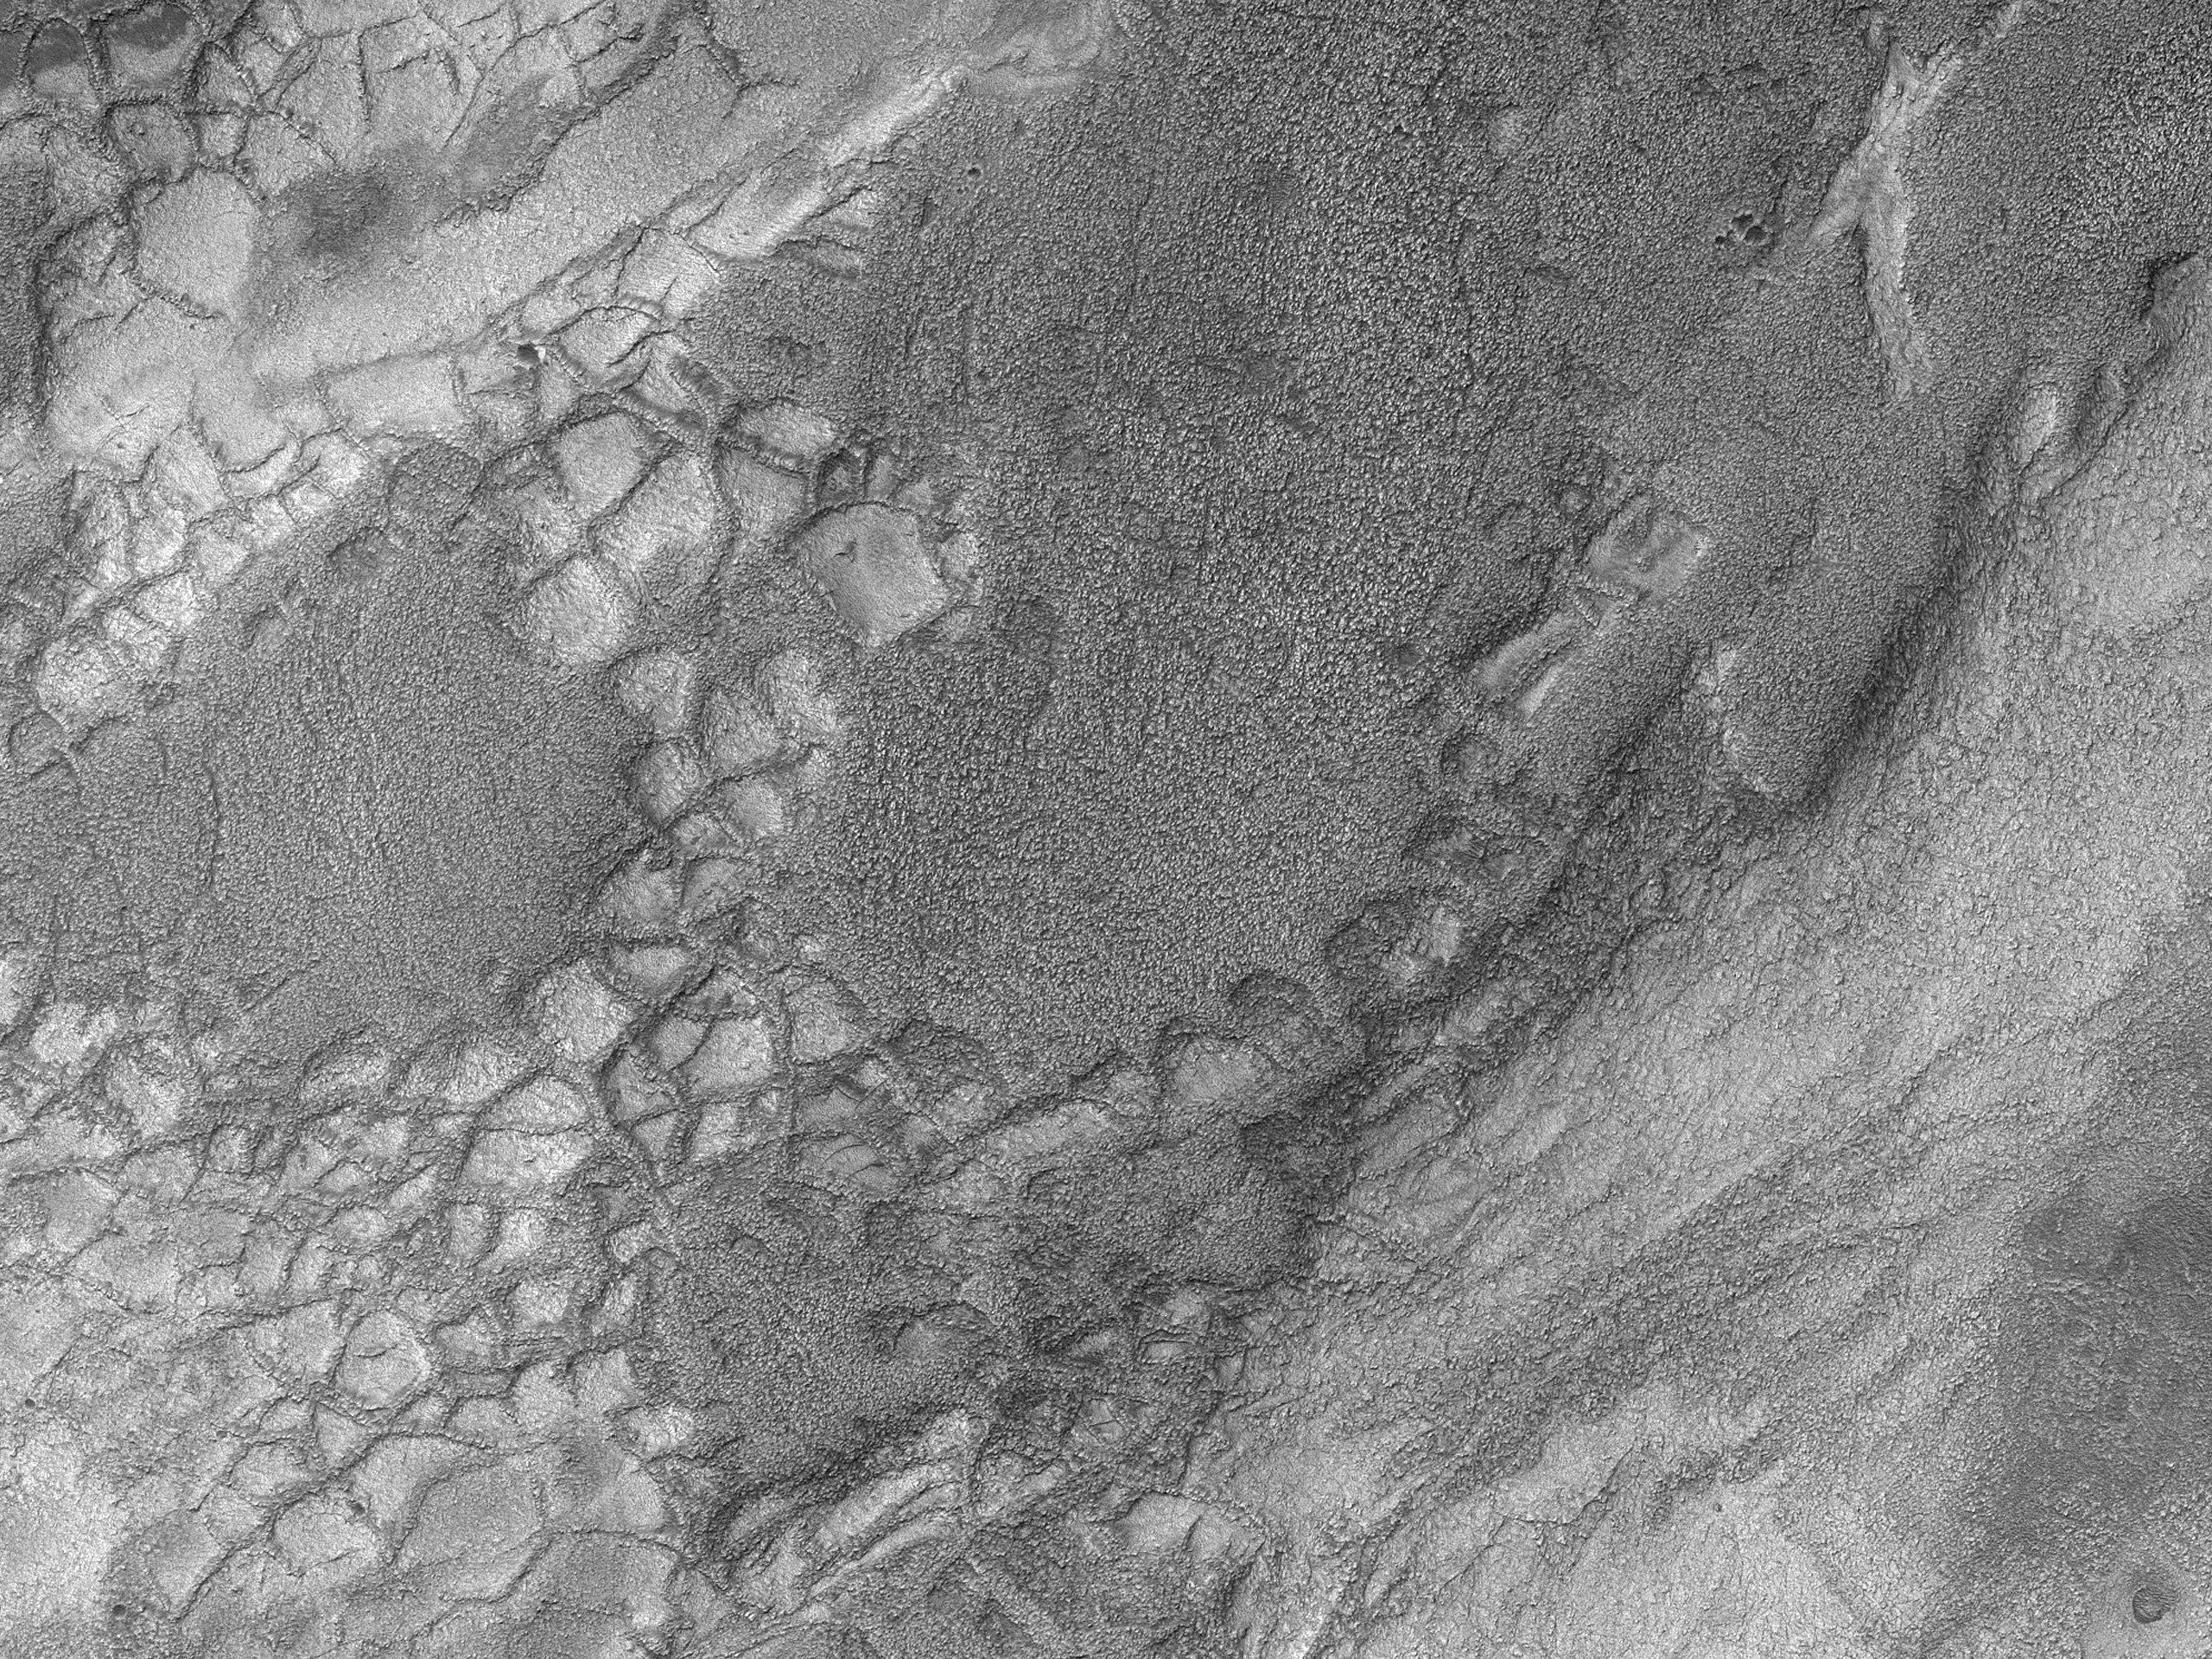 A Ridge Network in Hellas Planitia